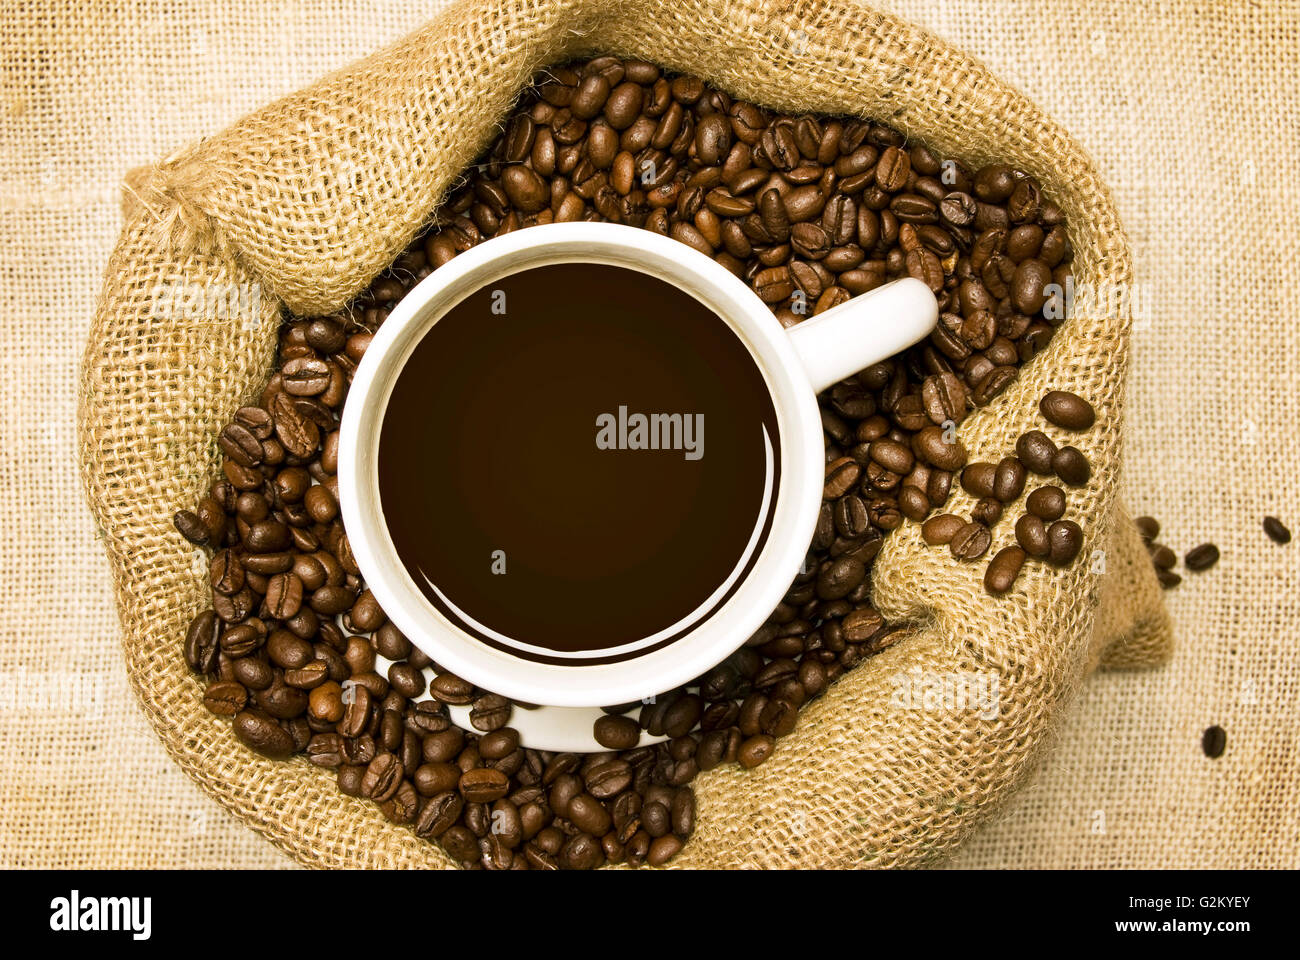 Roasted Coffee Beans In Burlap Bag With Fresh Brewed Coffee On Top - Stock Image